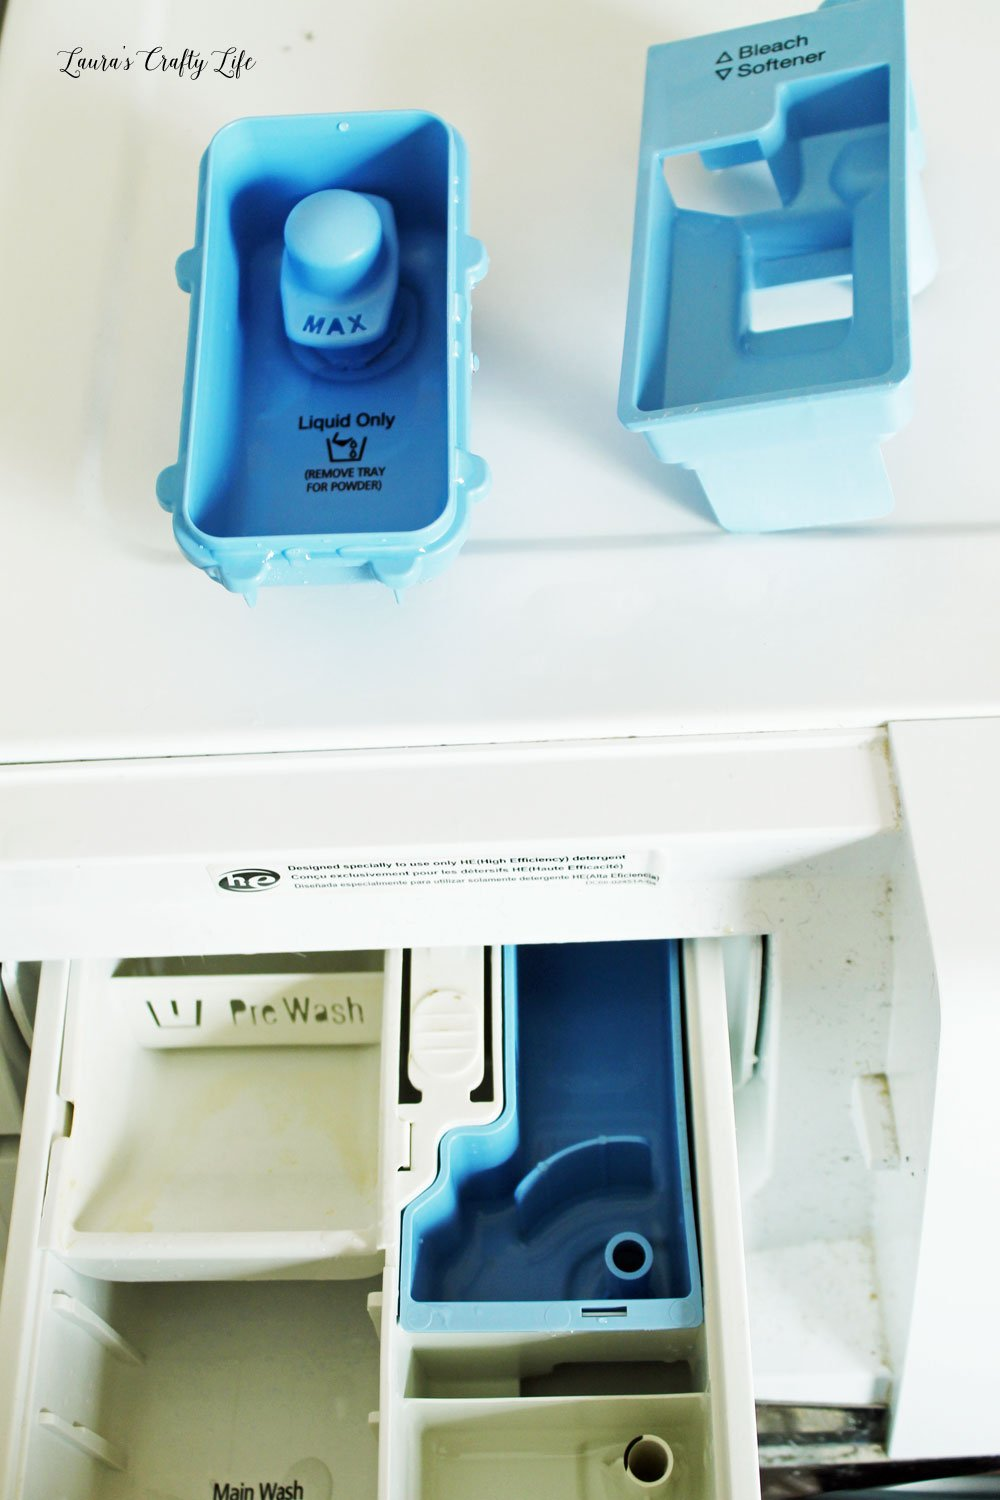 Remove detergent dispensers